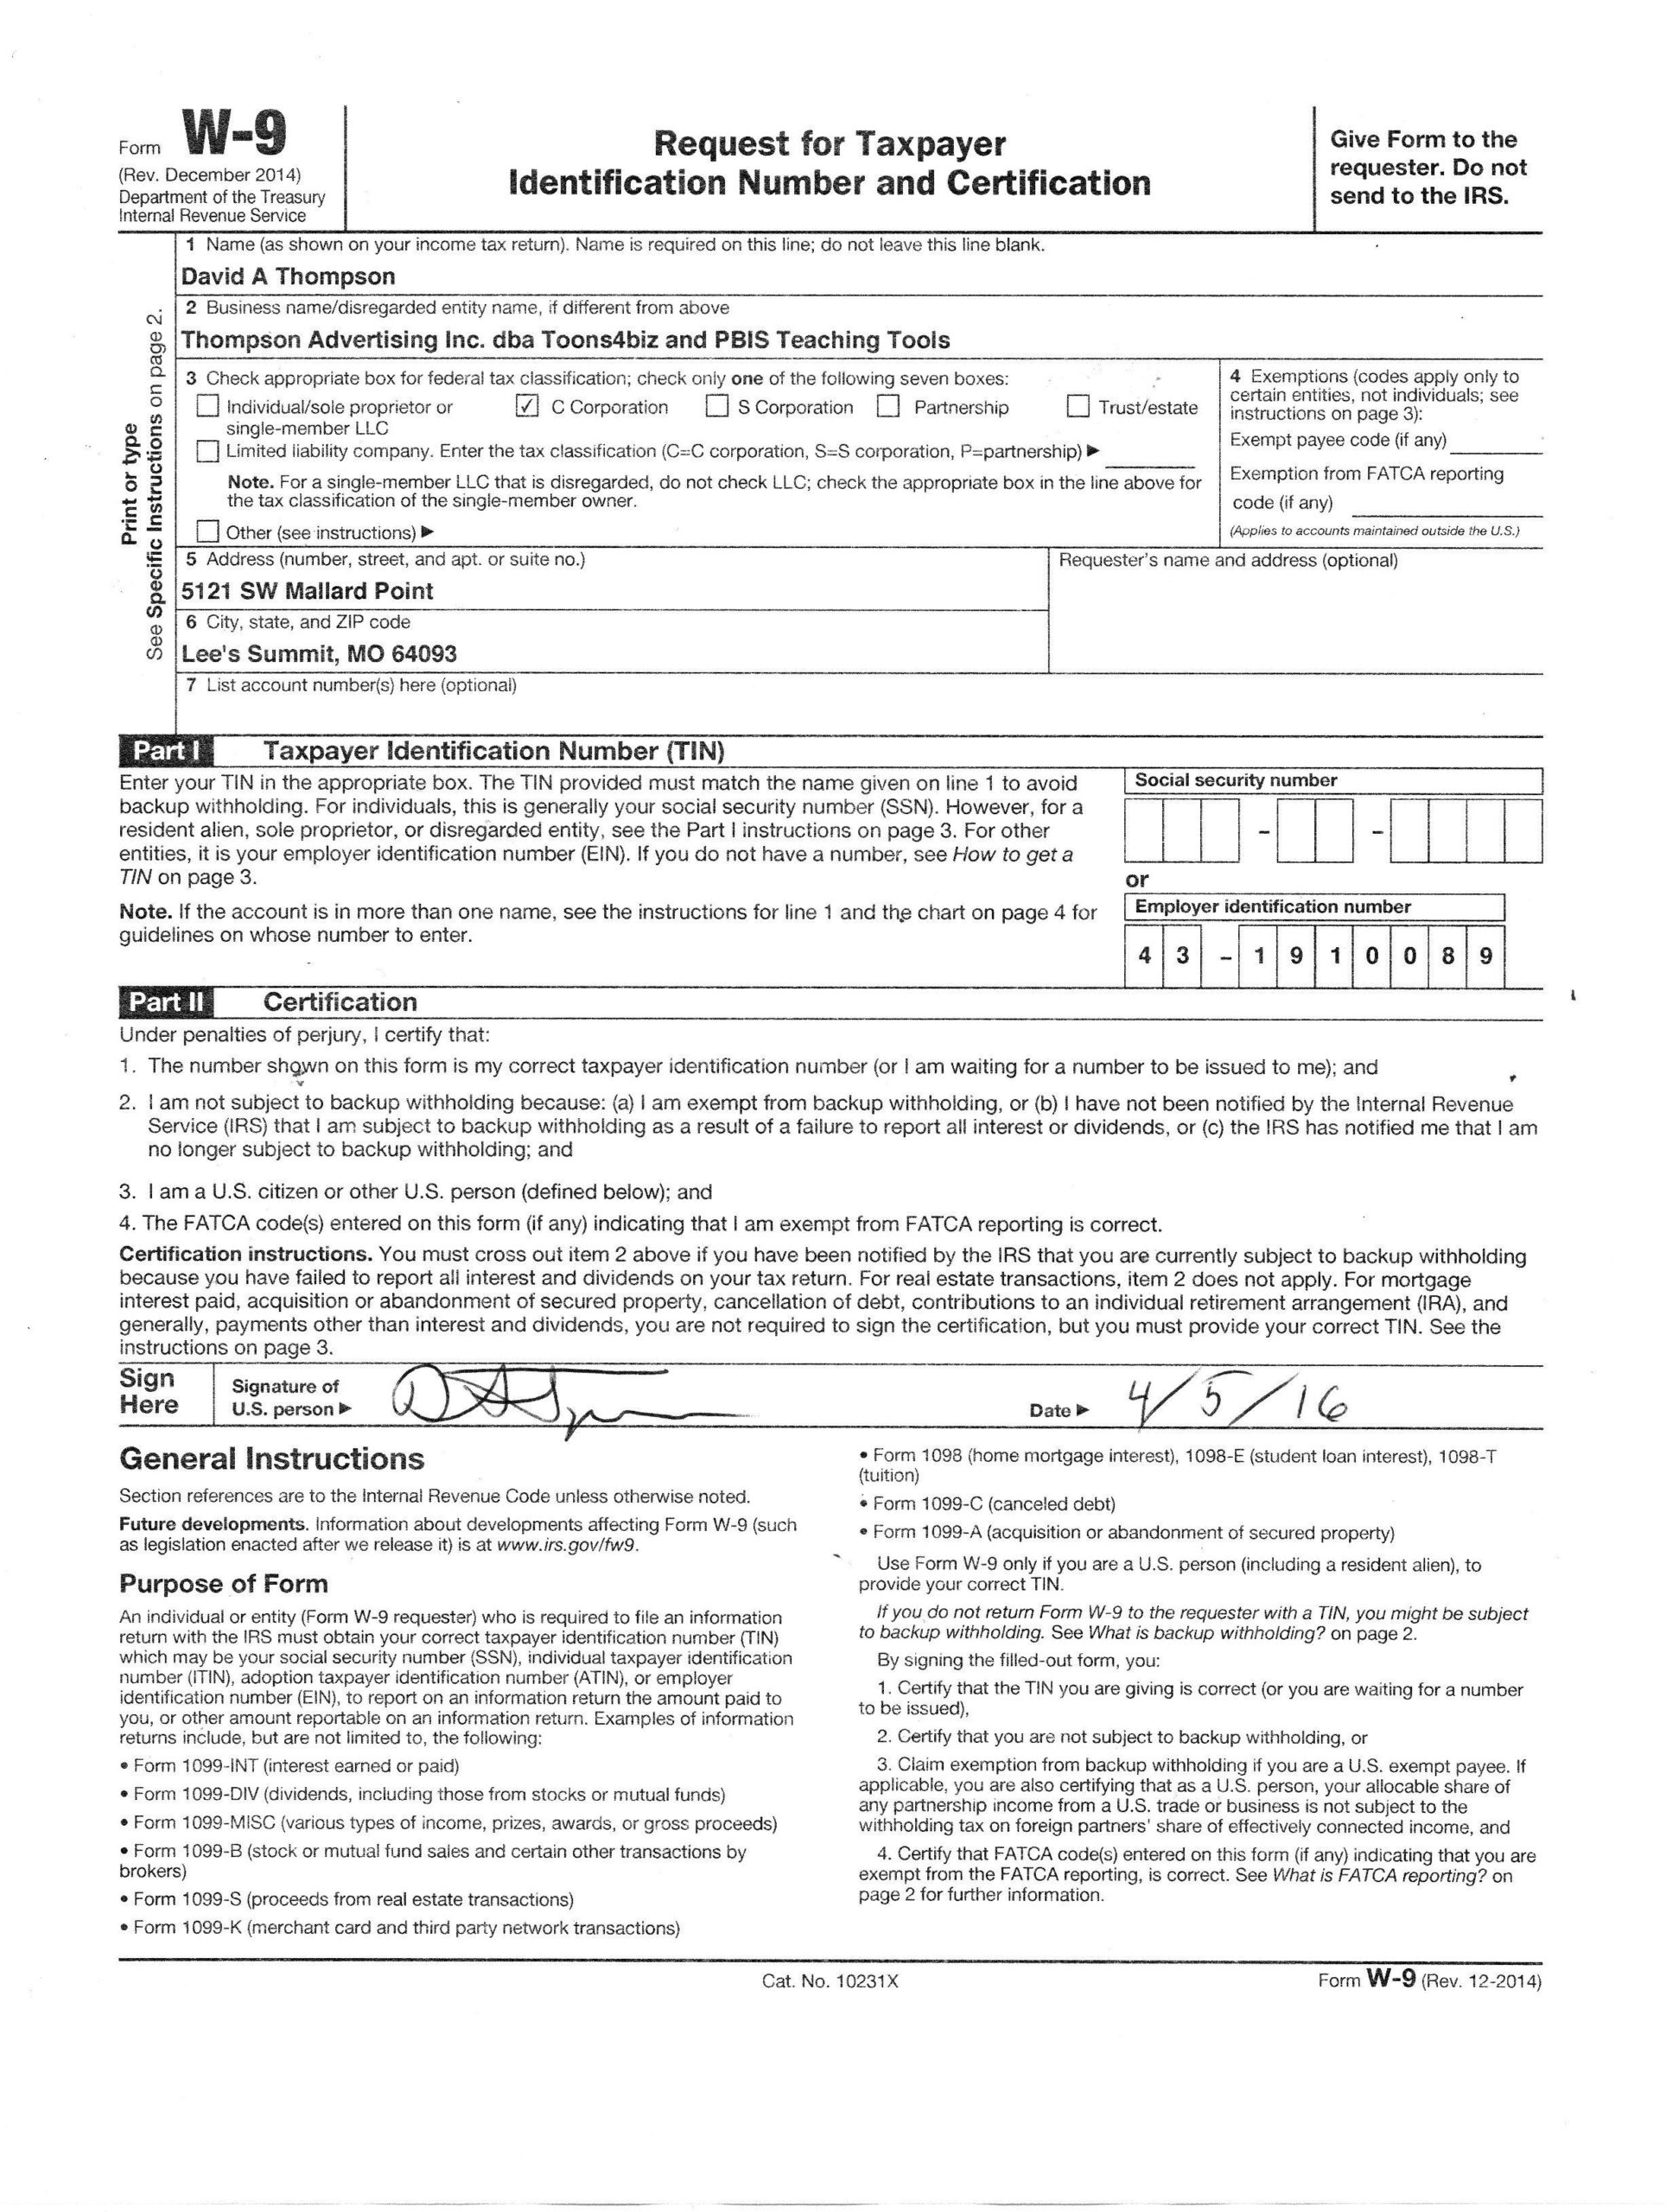 Downloadable W 9 Form W9 Form Mascot Junction In 2020 regarding Irs Printable W 9 Form